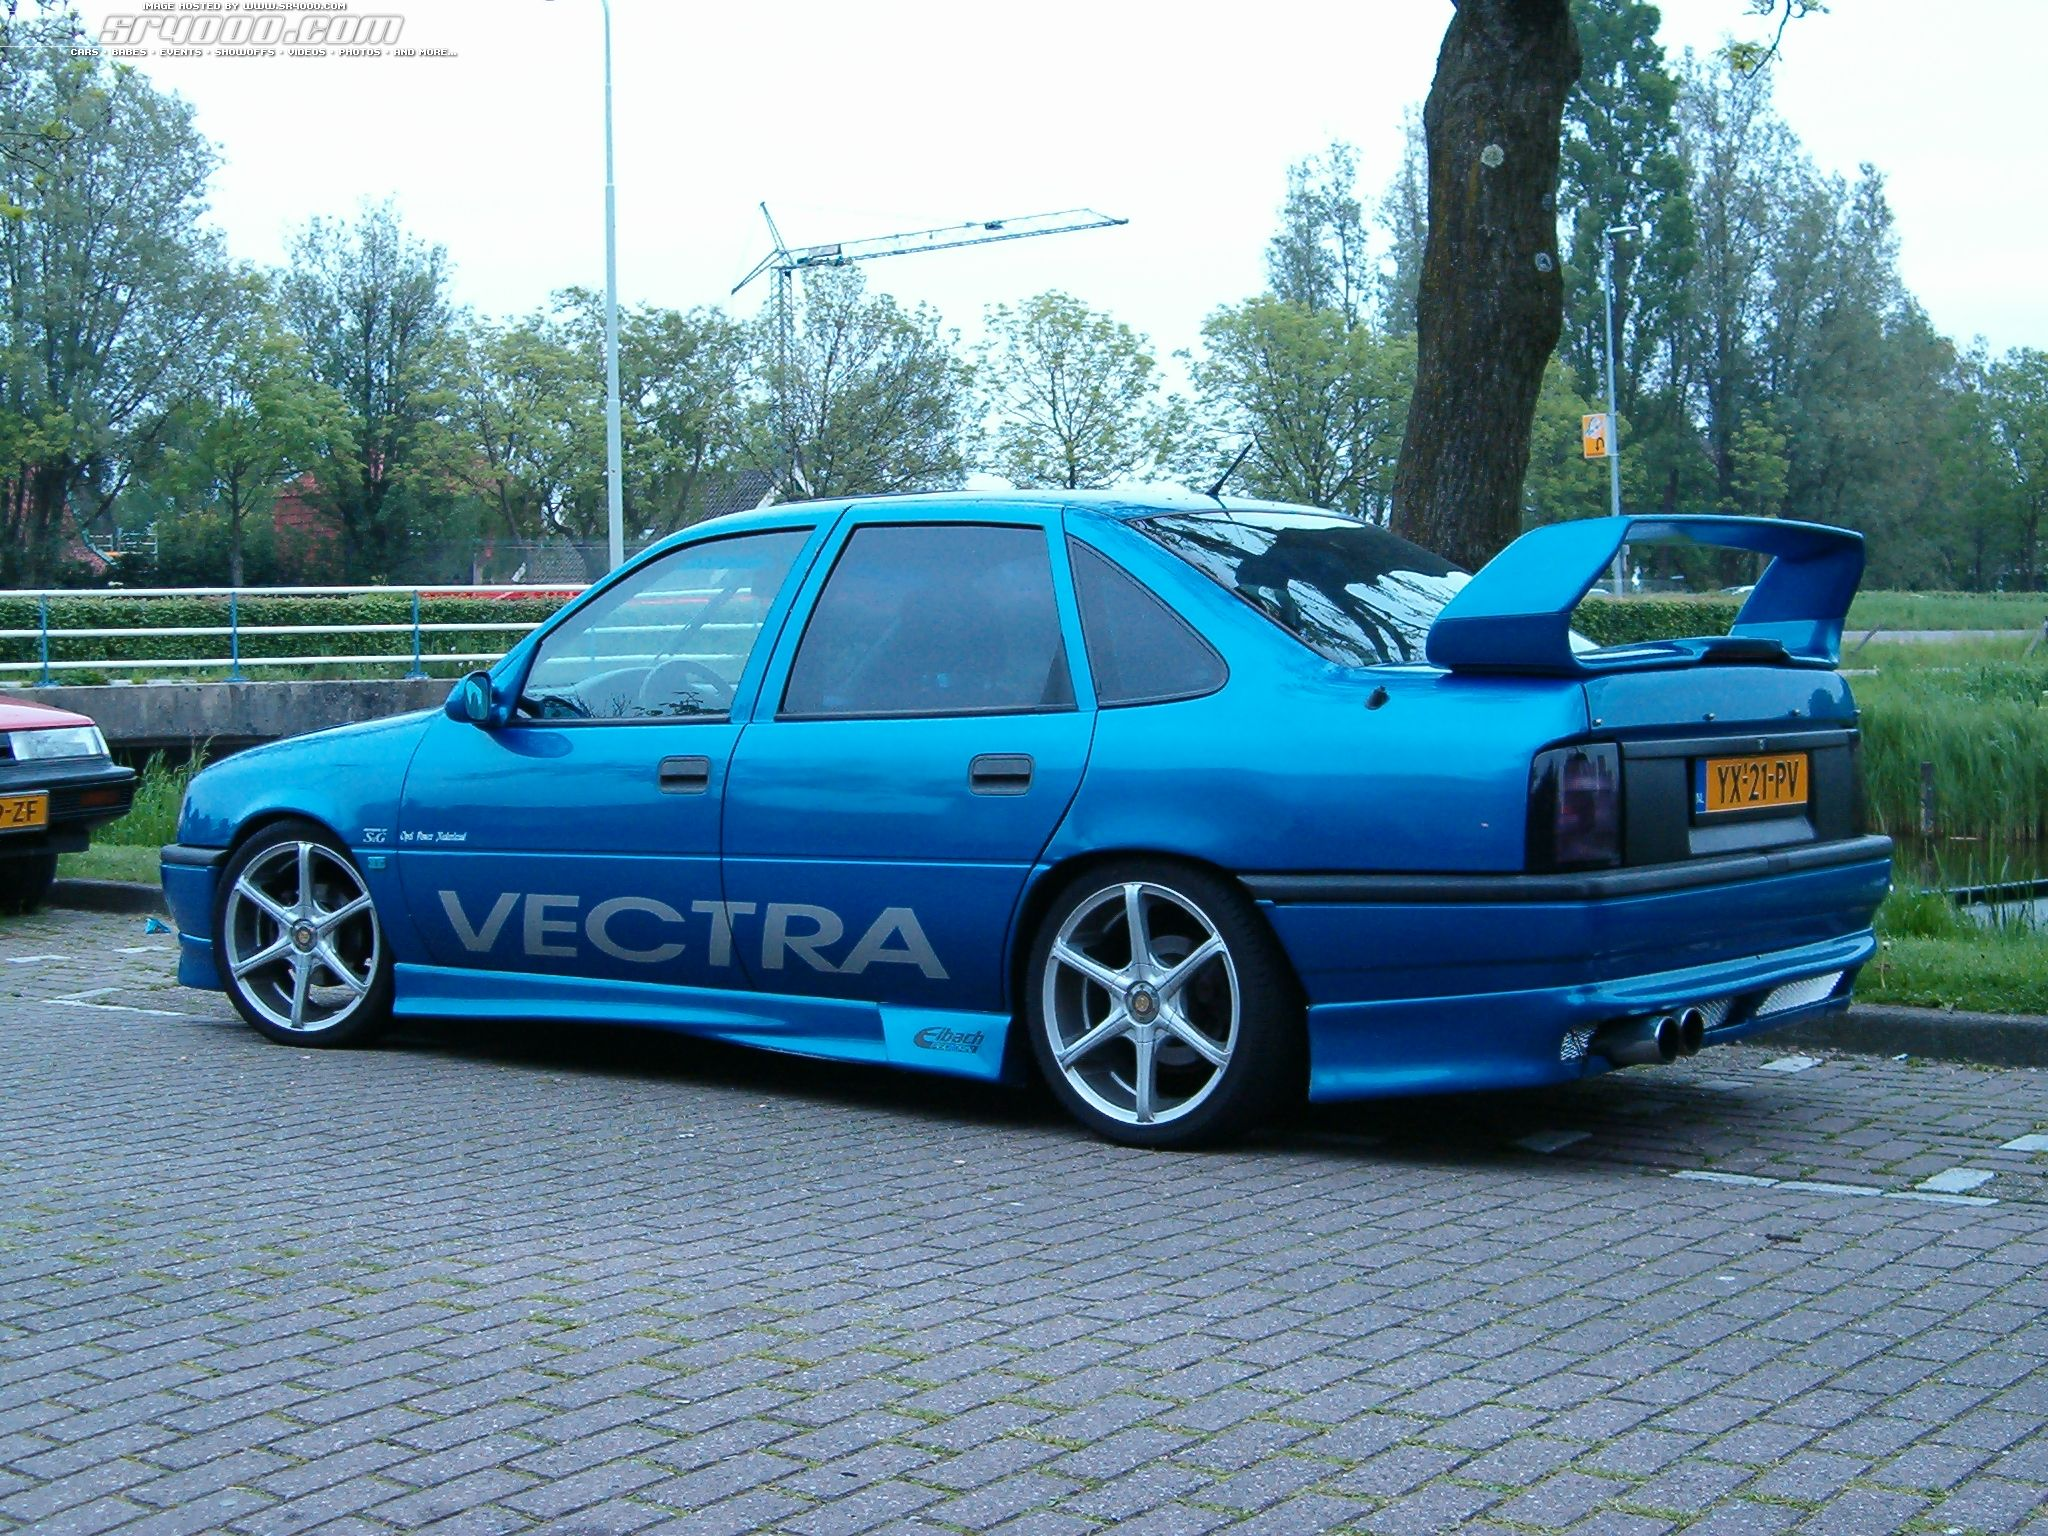 Chevrolet Vectra 1995 Review Amazing Pictures And Images